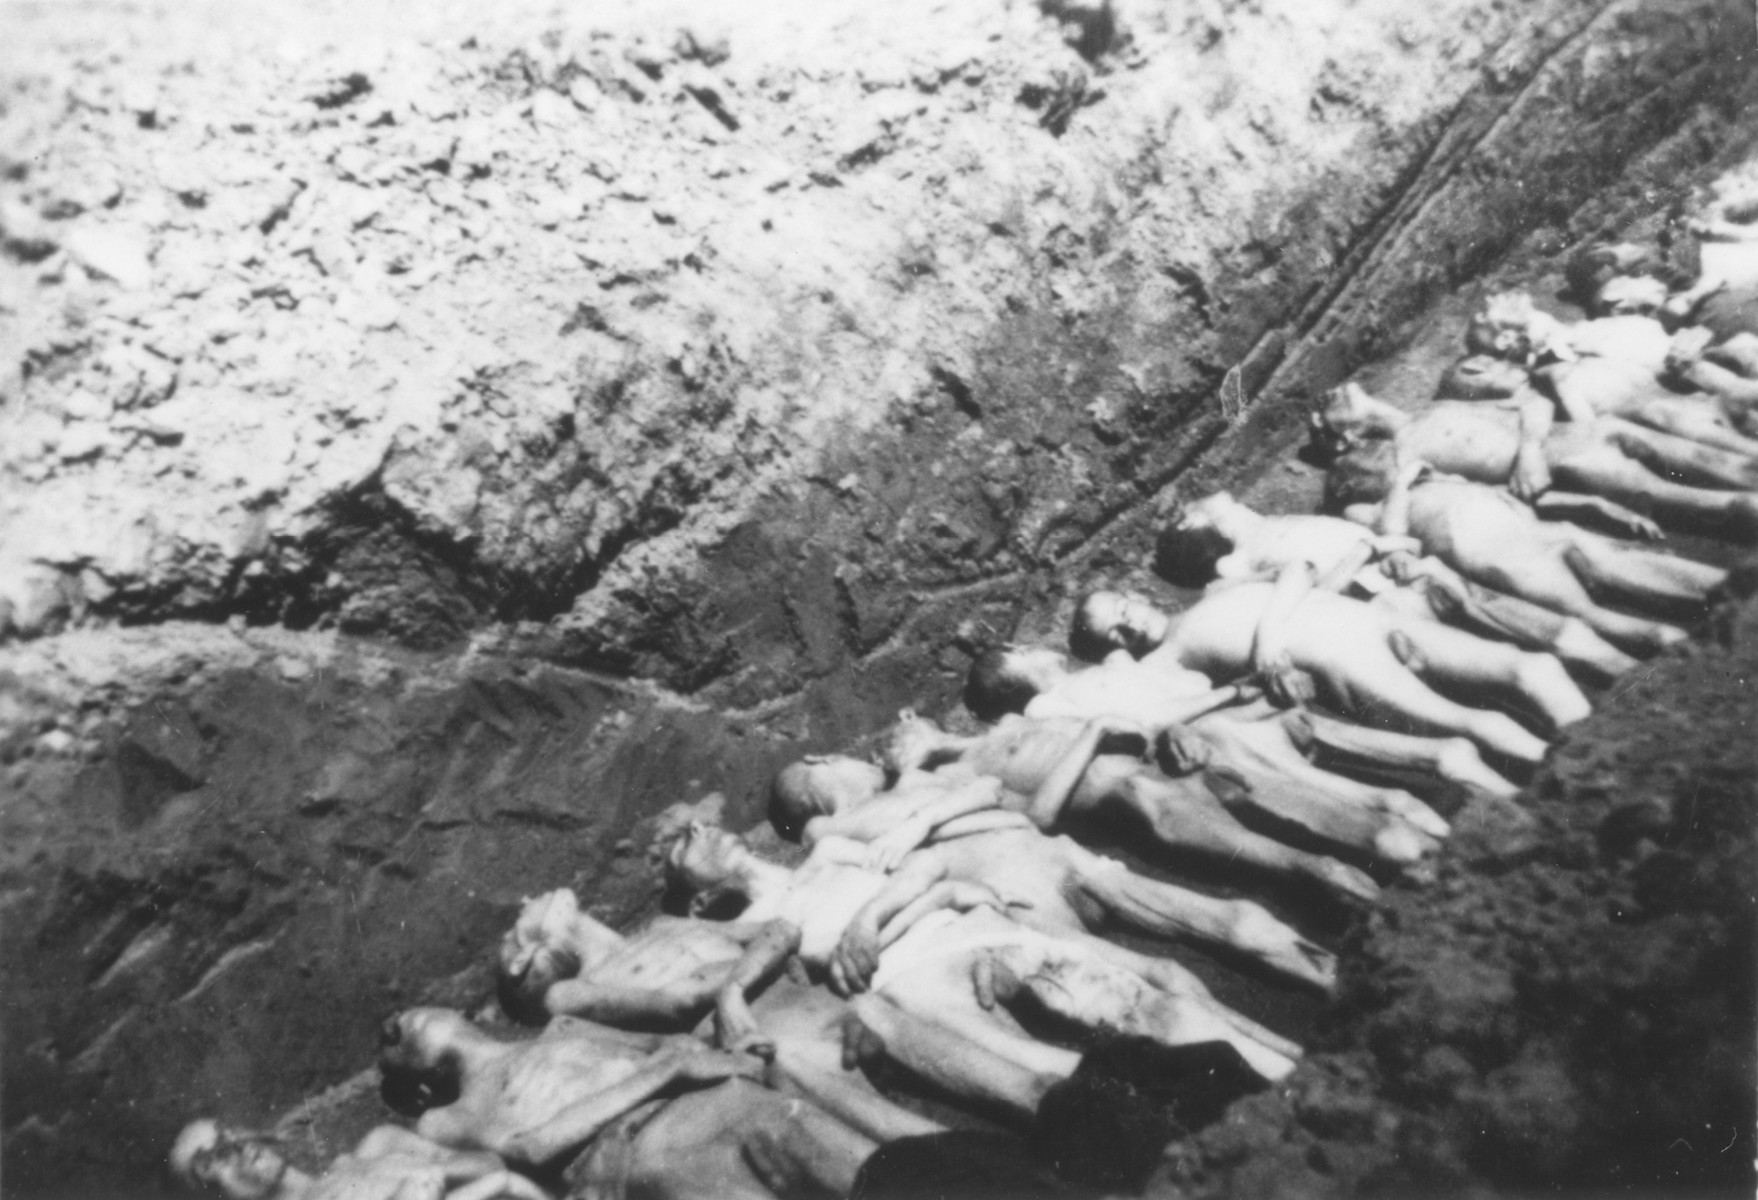 The bodies of former inmates are laid out in a mass grave at the Mauthausen concentration camp.